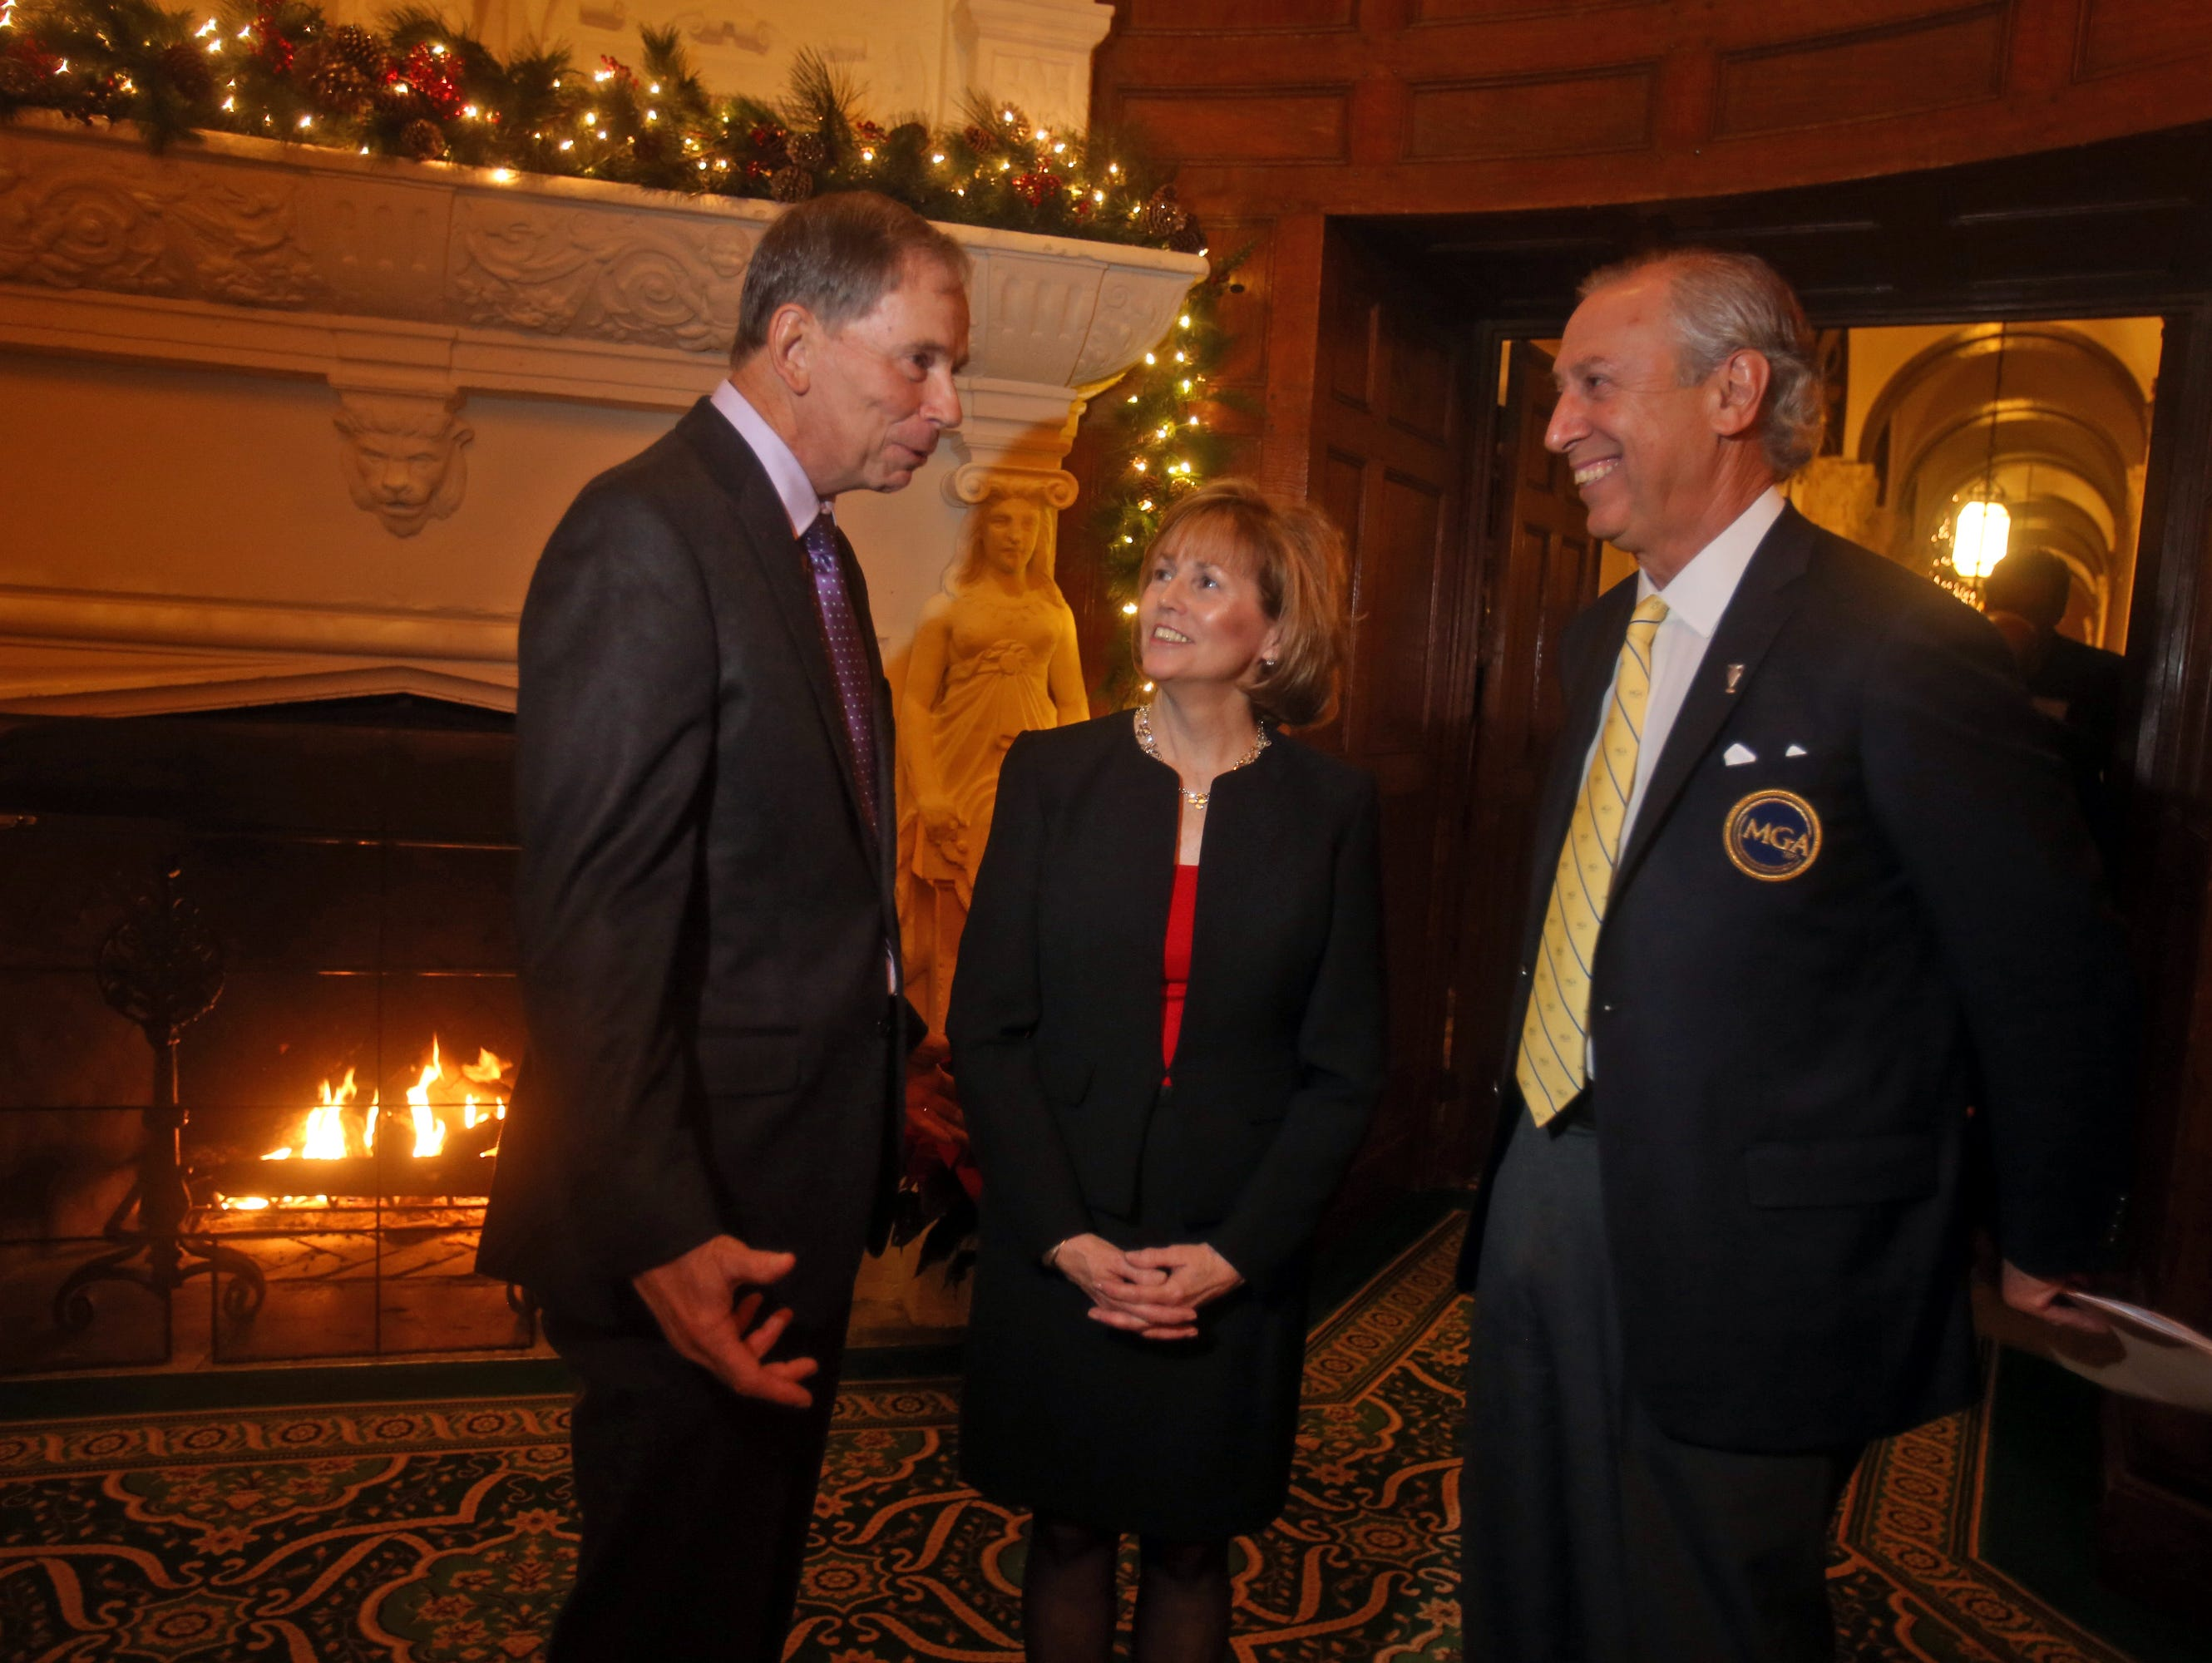 Gene Westmoreland ,left, former MGA championship director; retiring MGA senior communications manager Jeanne McCooey, and executive director Jay Mottola at the MGA's annual meeting held at Westchester Country Club Dec. 2, 2015. McCooey, who has spent 38 years with the MGA, received the organization's Distinguished Service Award.